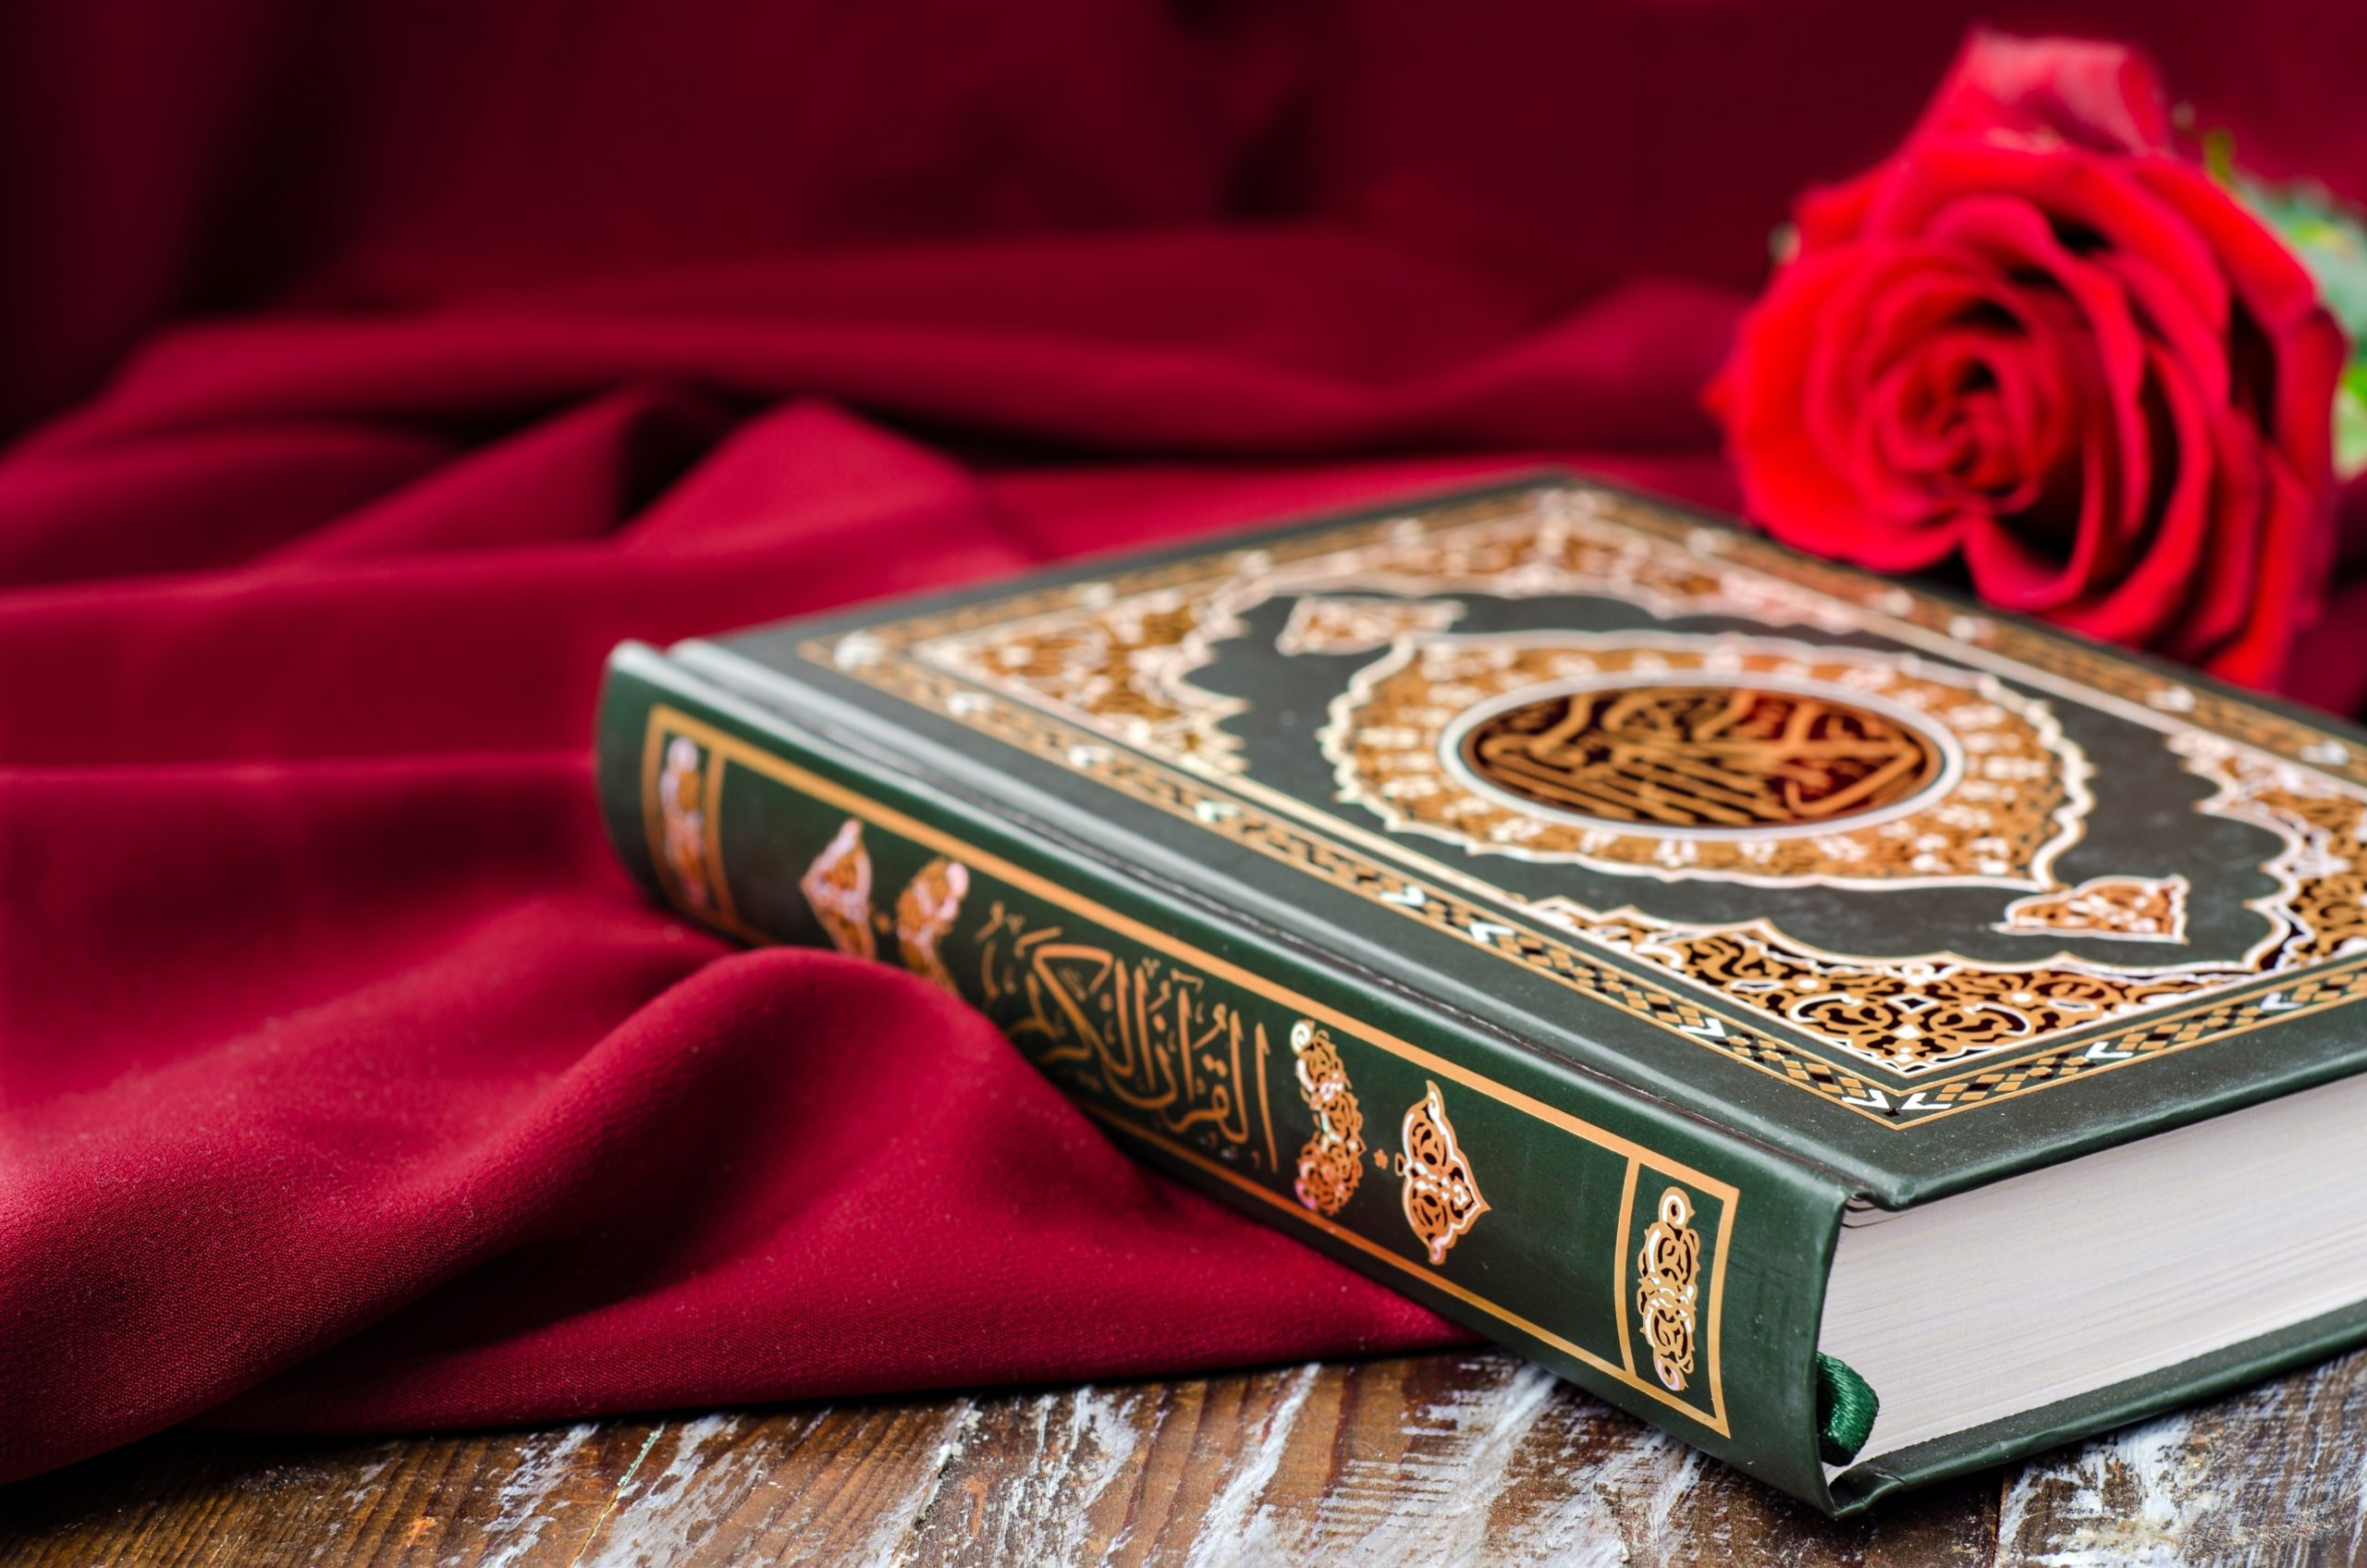 To learn Quranic Arabic, you should focus on Arabic grammar and Arabic words, or Arabic language courses? Click here to find out.